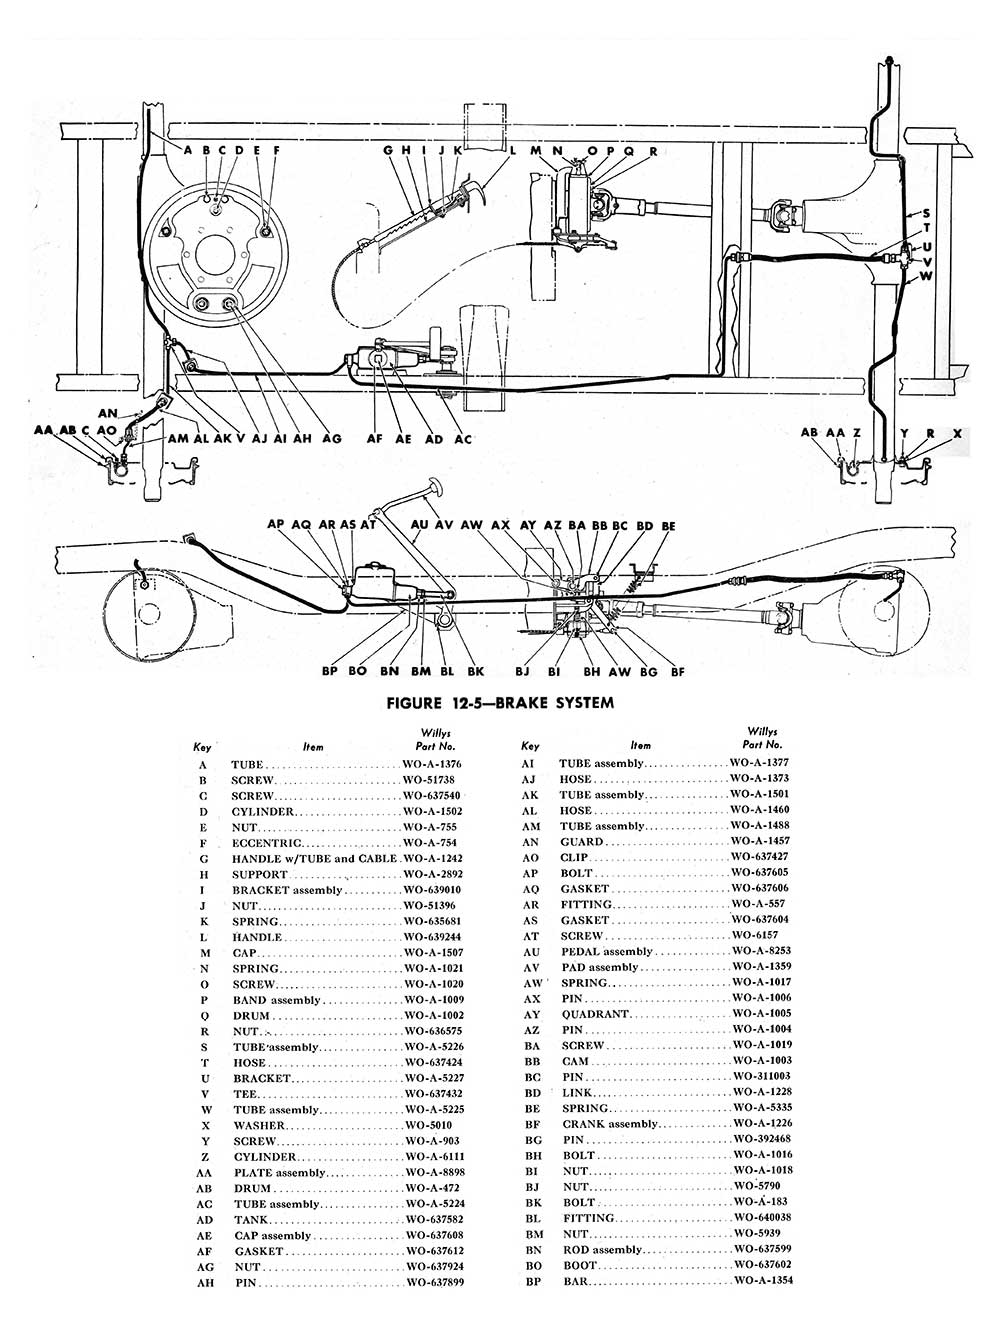 Jaguar Wiring Diagram Schemes together with Mb G likewise Jeep Cj Fuel Tank in addition Heui System together with Install Rep Remove Rear Door Panel Chevy Colorado Fix. on jeepster fuel pump